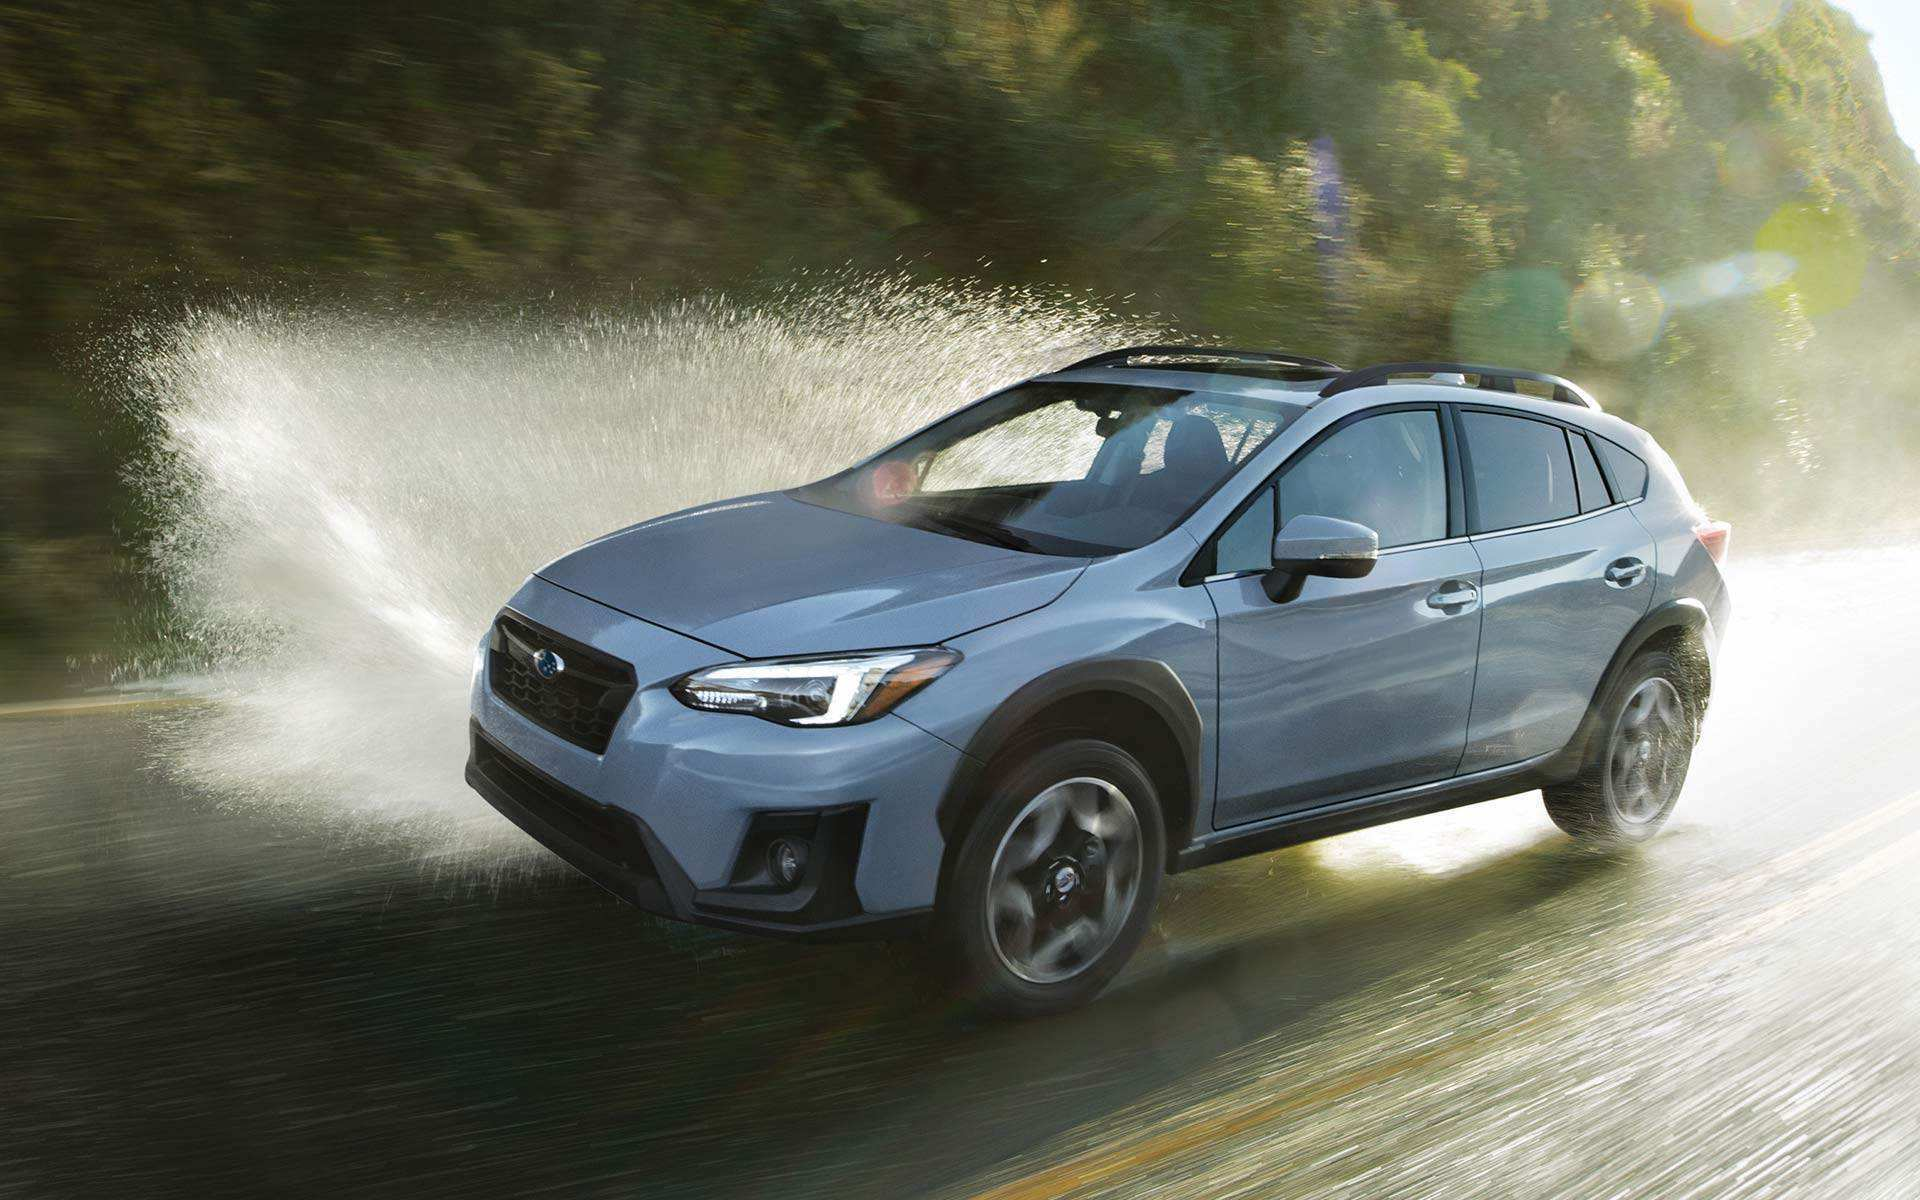 30 Gallery of Subaru Xv Turbo 2019 Rumors for Subaru Xv Turbo 2019